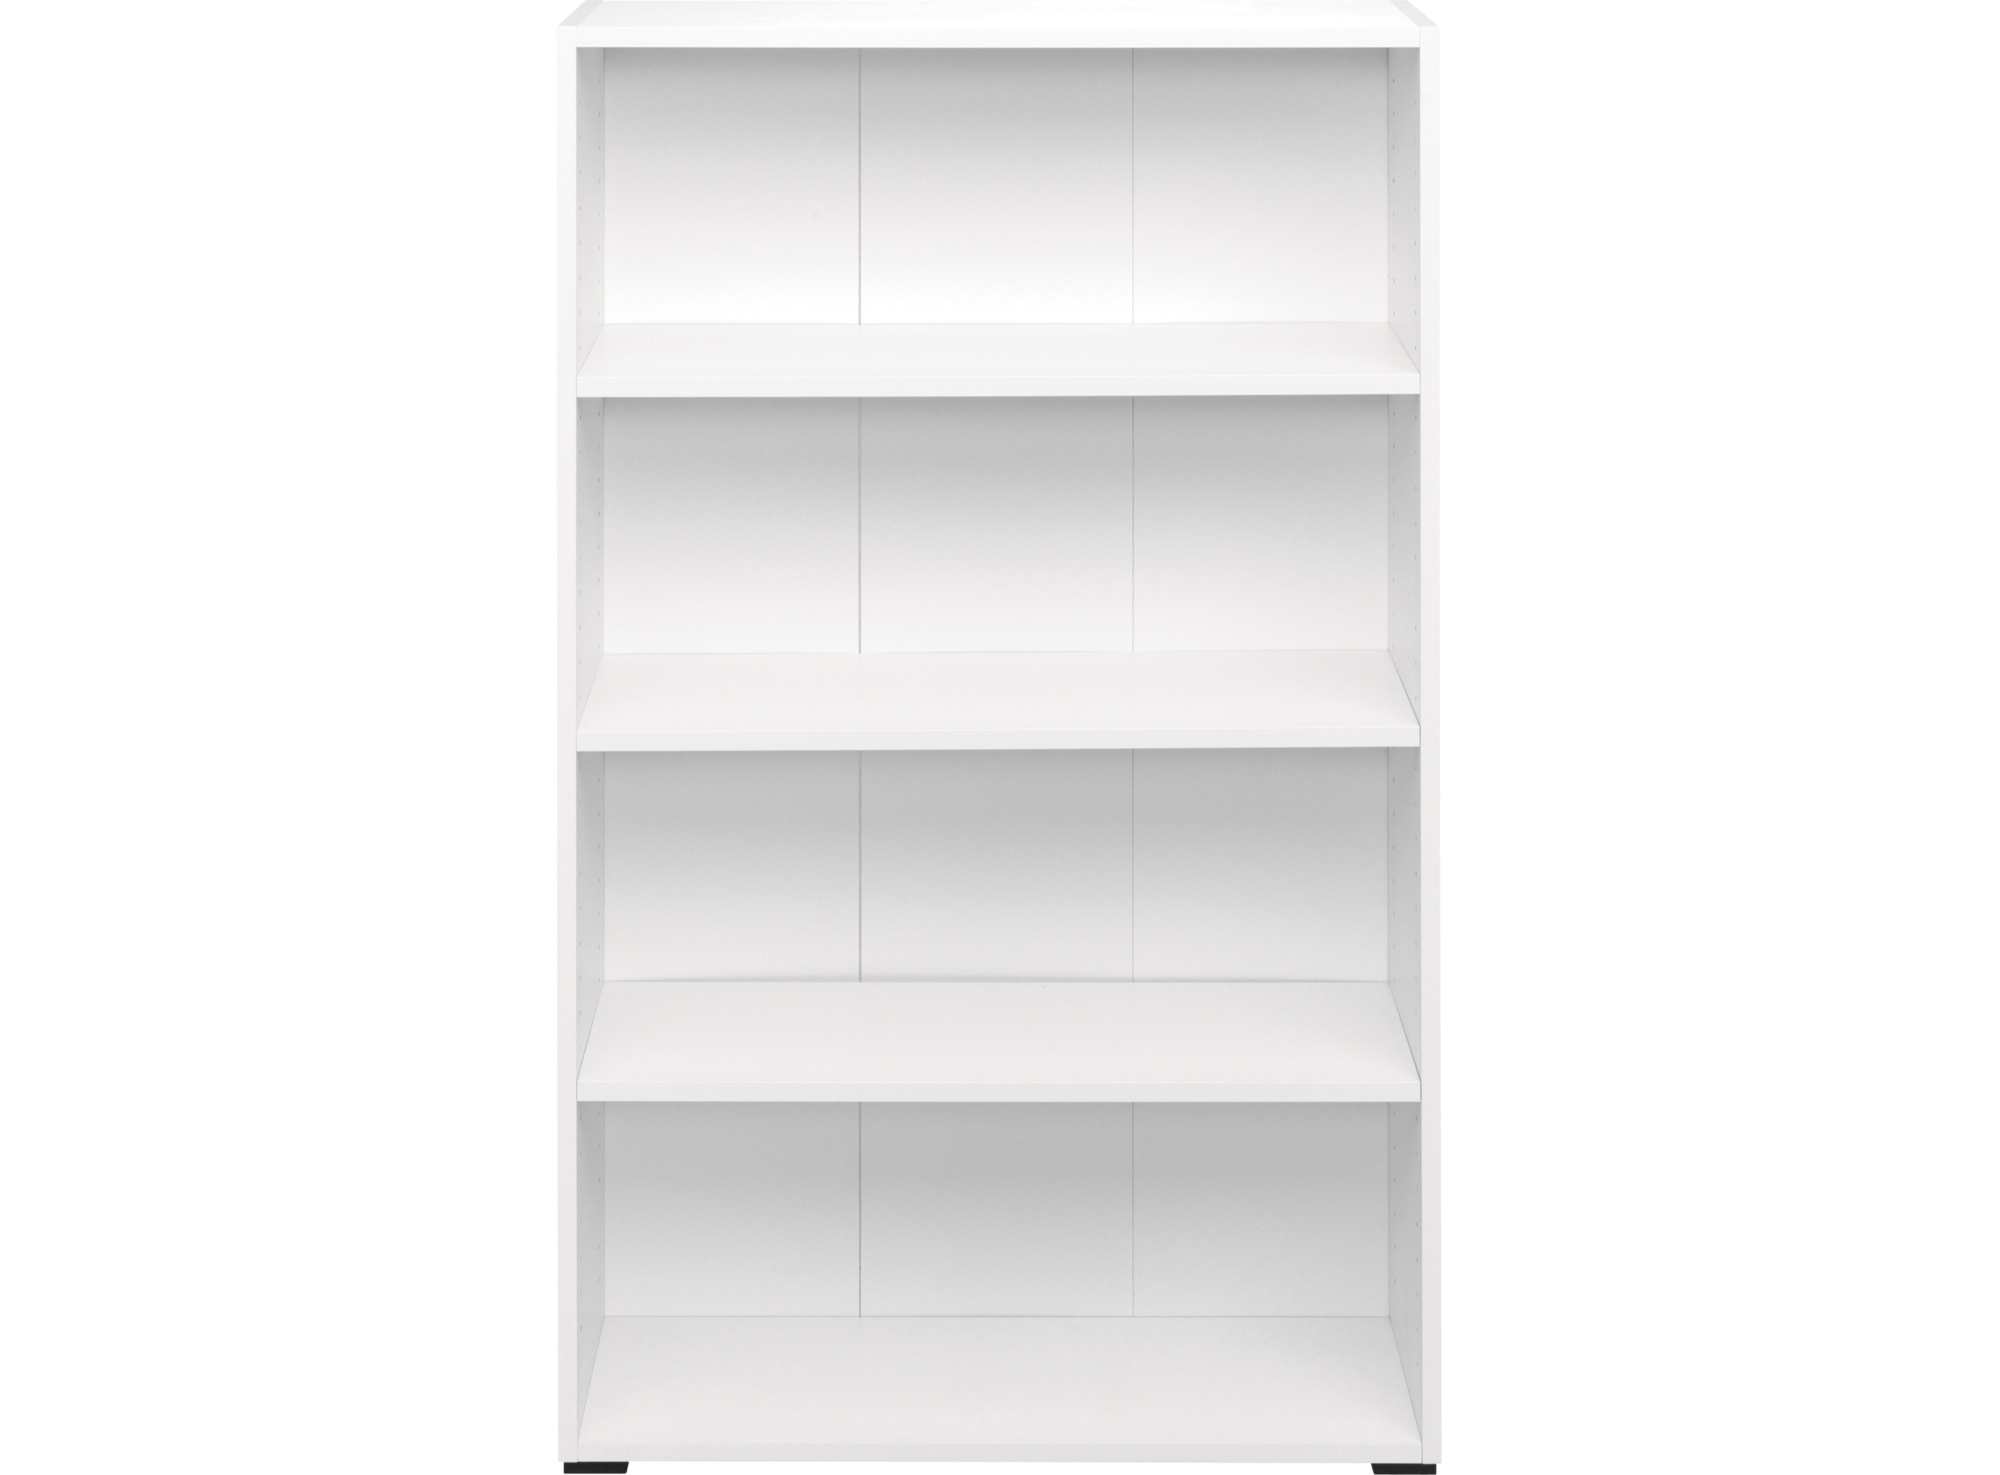 bibliotheque 80x132x28 cm blanc biblioth que salon s jour meuble fly. Black Bedroom Furniture Sets. Home Design Ideas